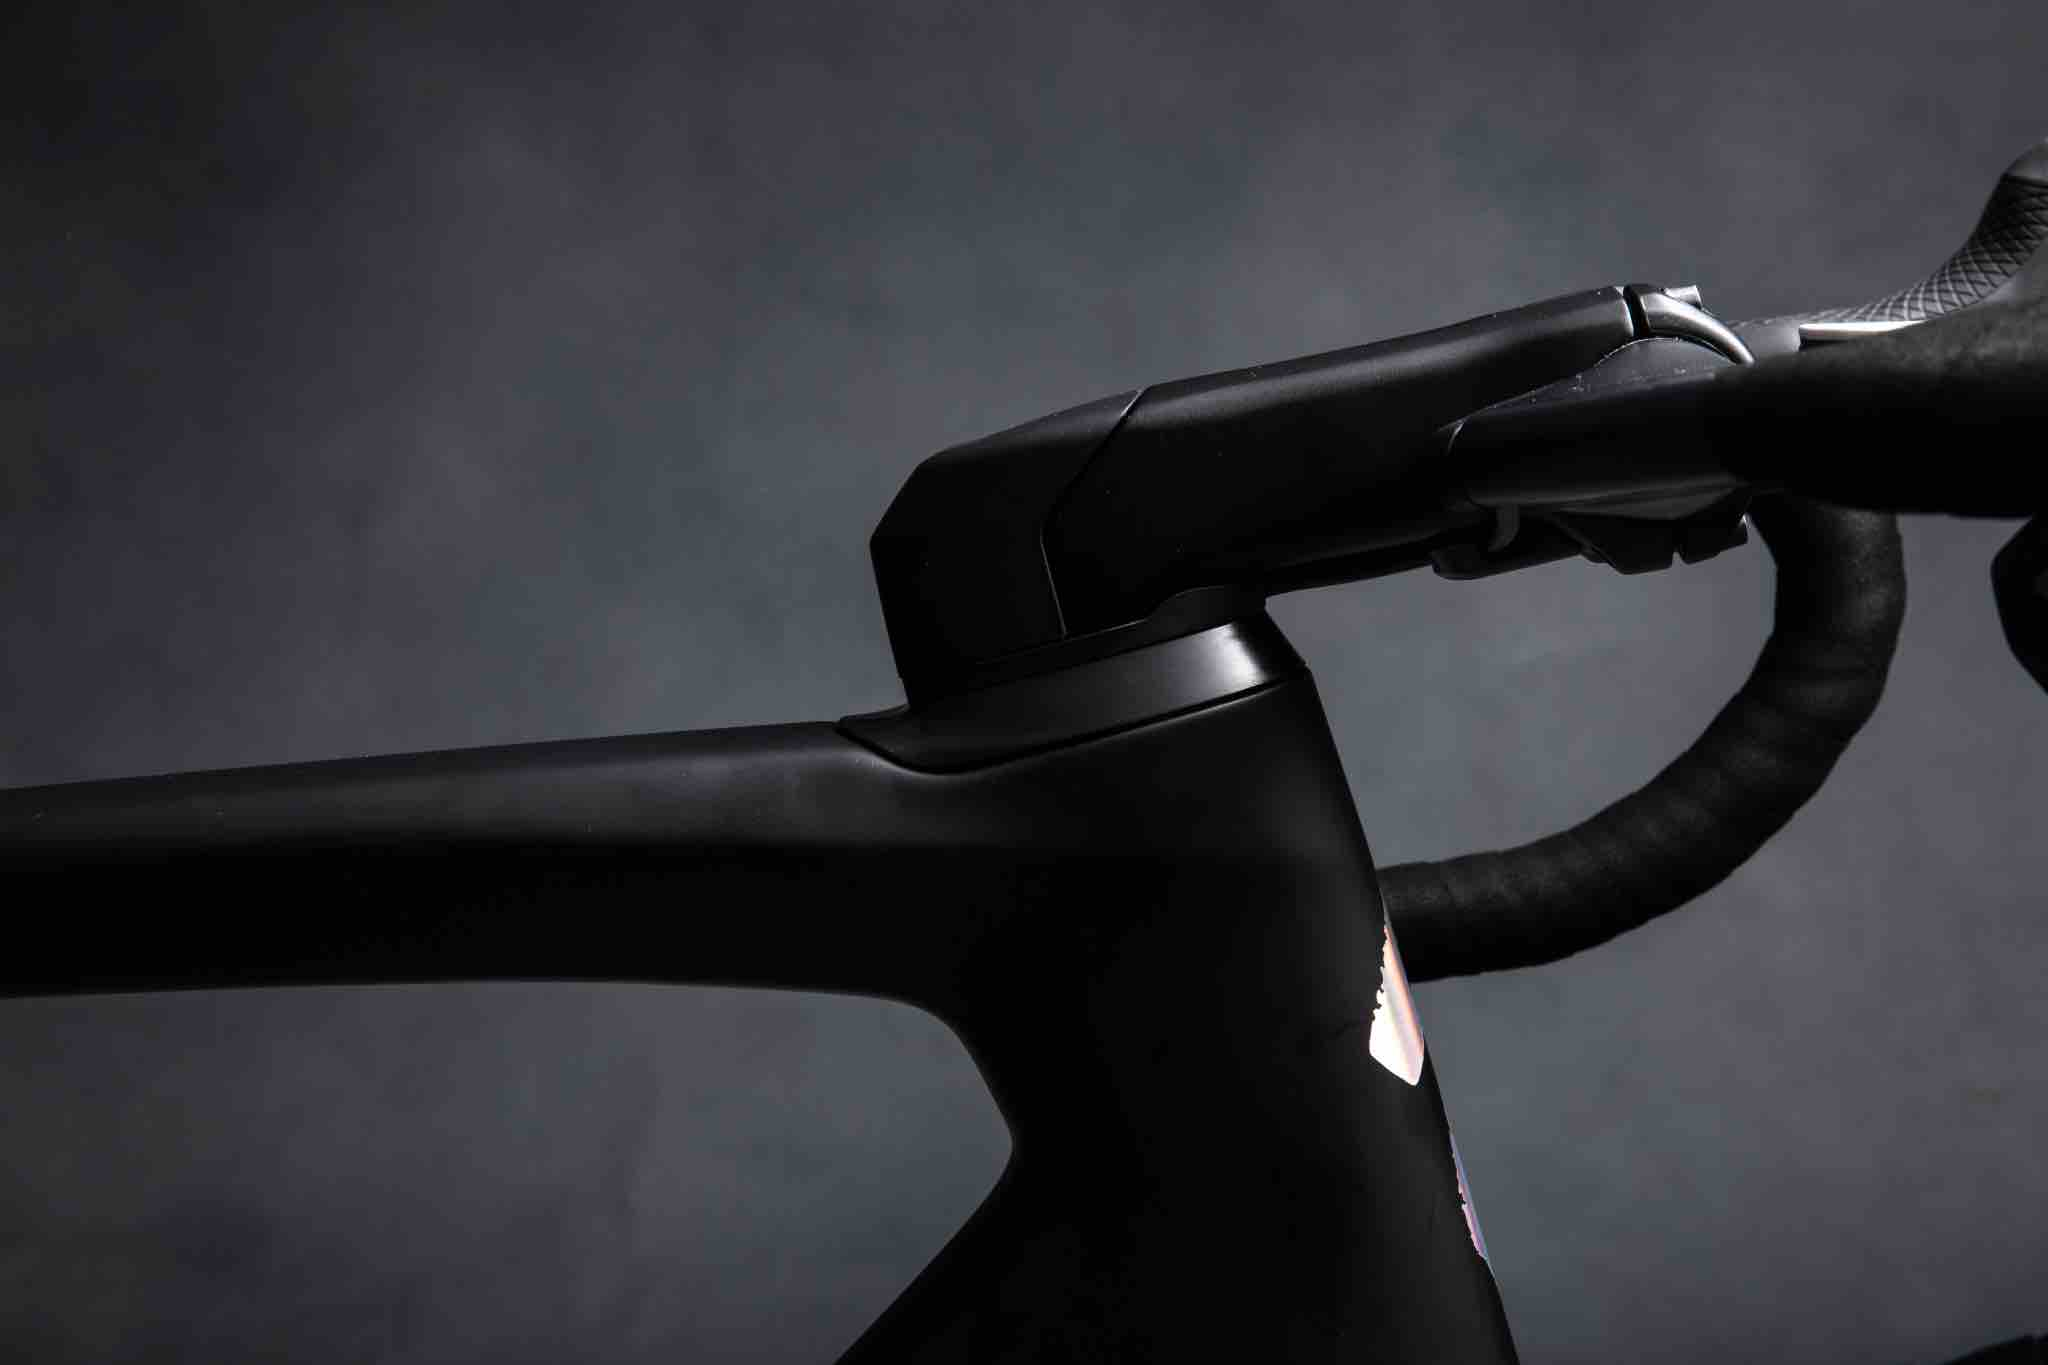 2019 Specialized Venge aero road bike tech details with integrated cockpit